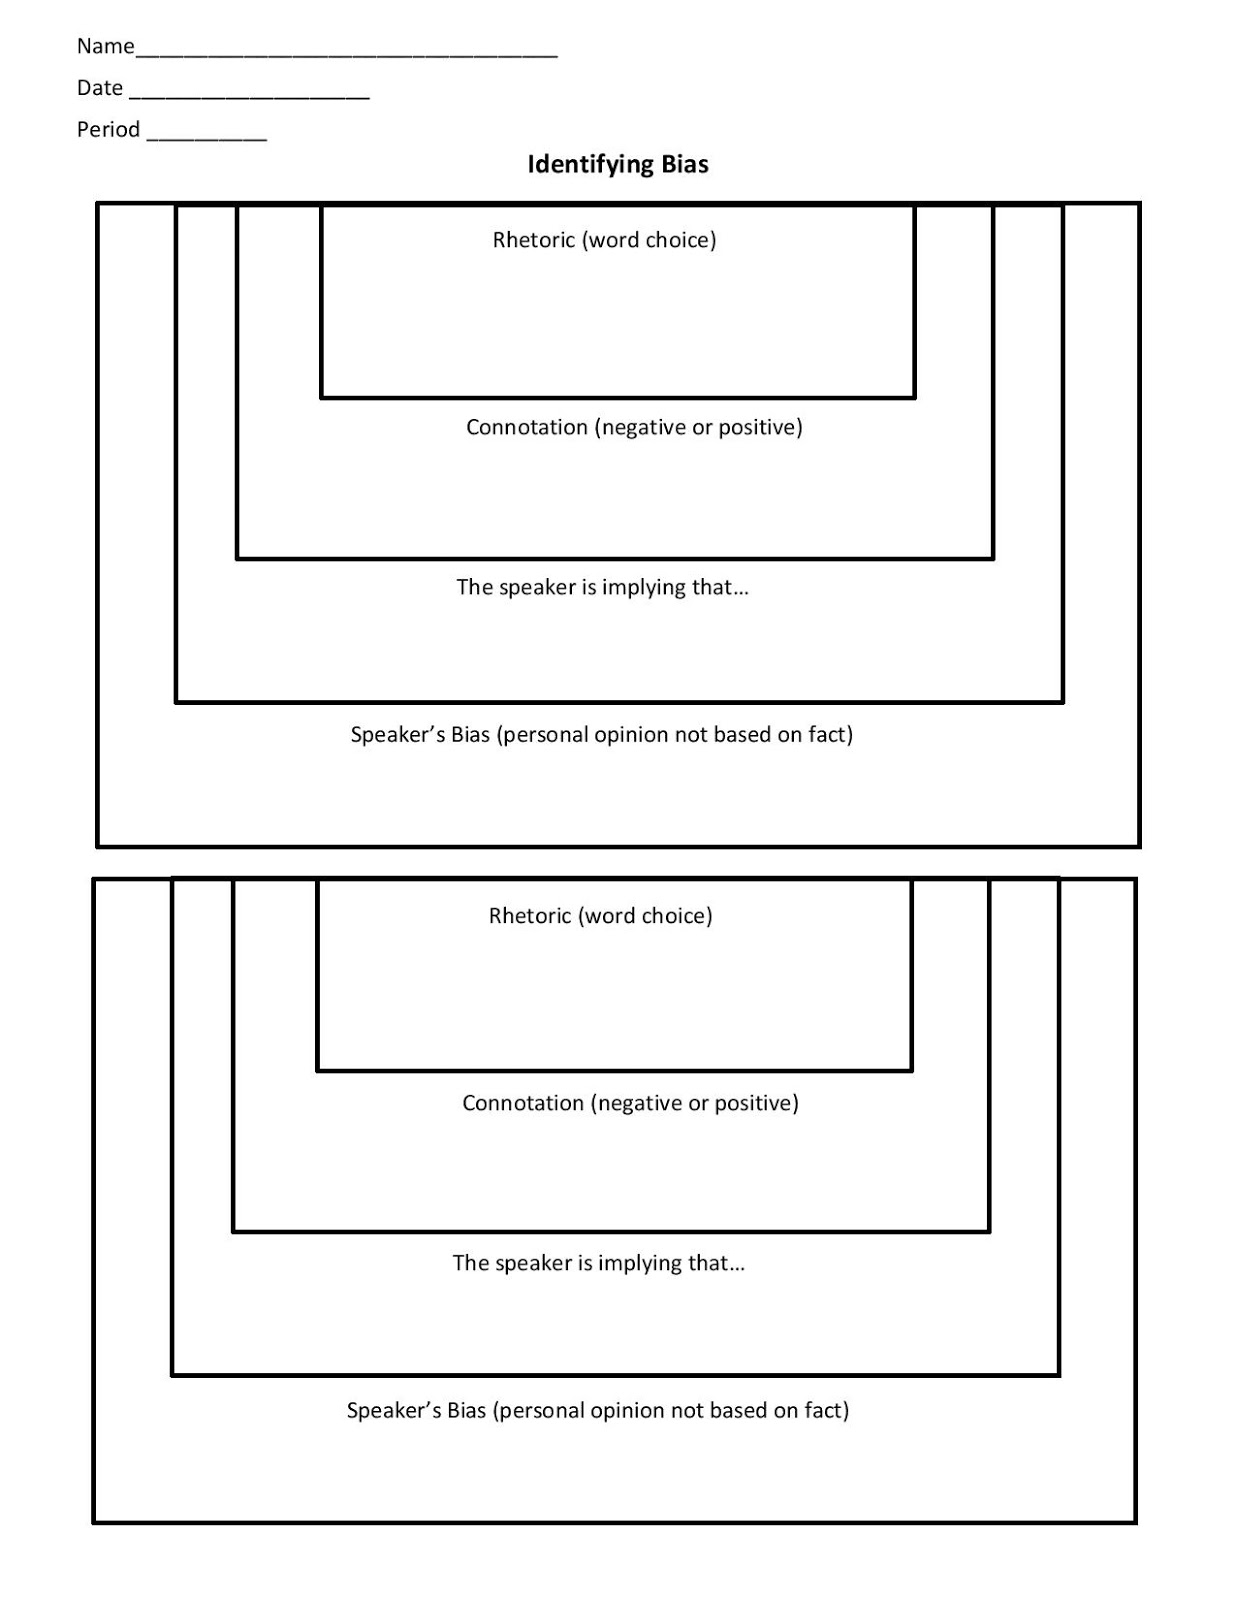 worksheet Fact Opinion Bias Worksheet miss k s english 9 identifying bias thinking map x2 x2